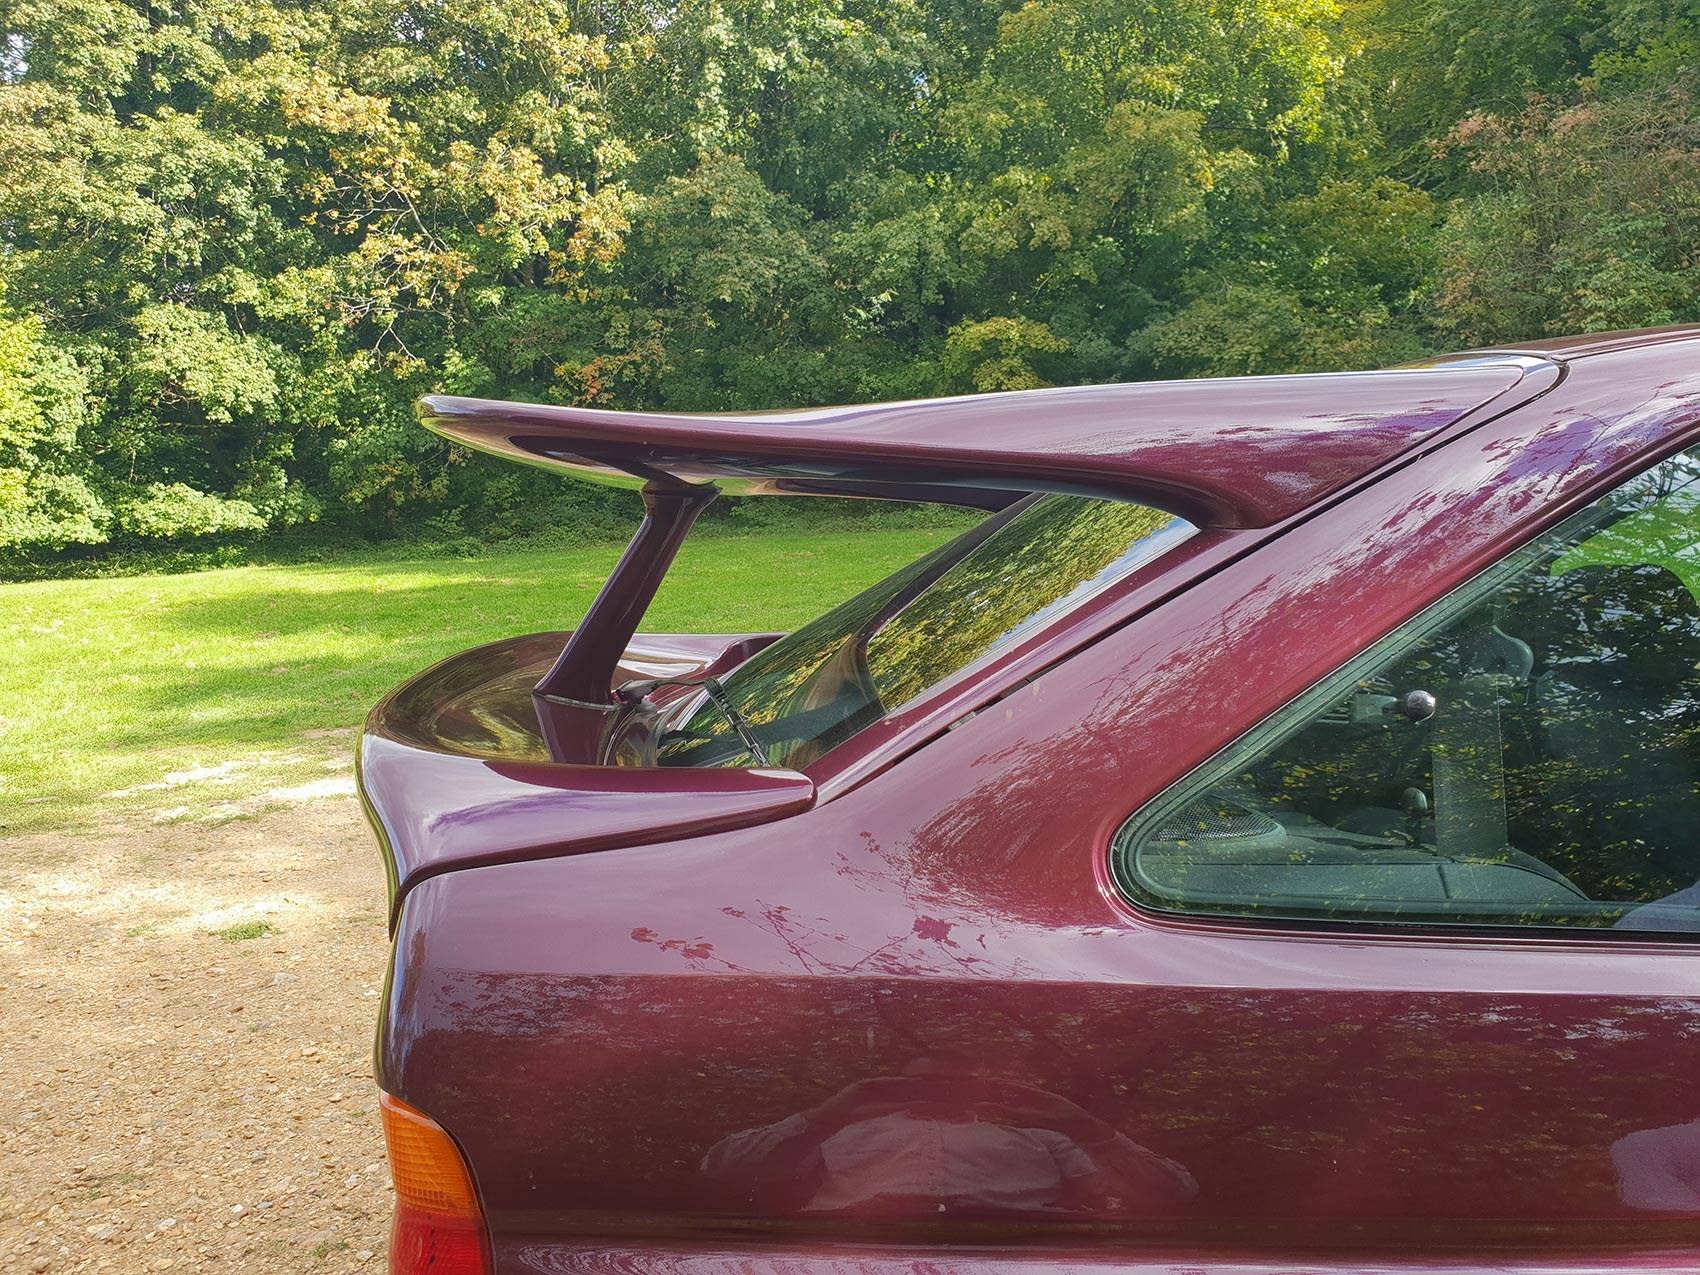 Ford Escort Cosworth Monte Carlo rear spoiler whale tail